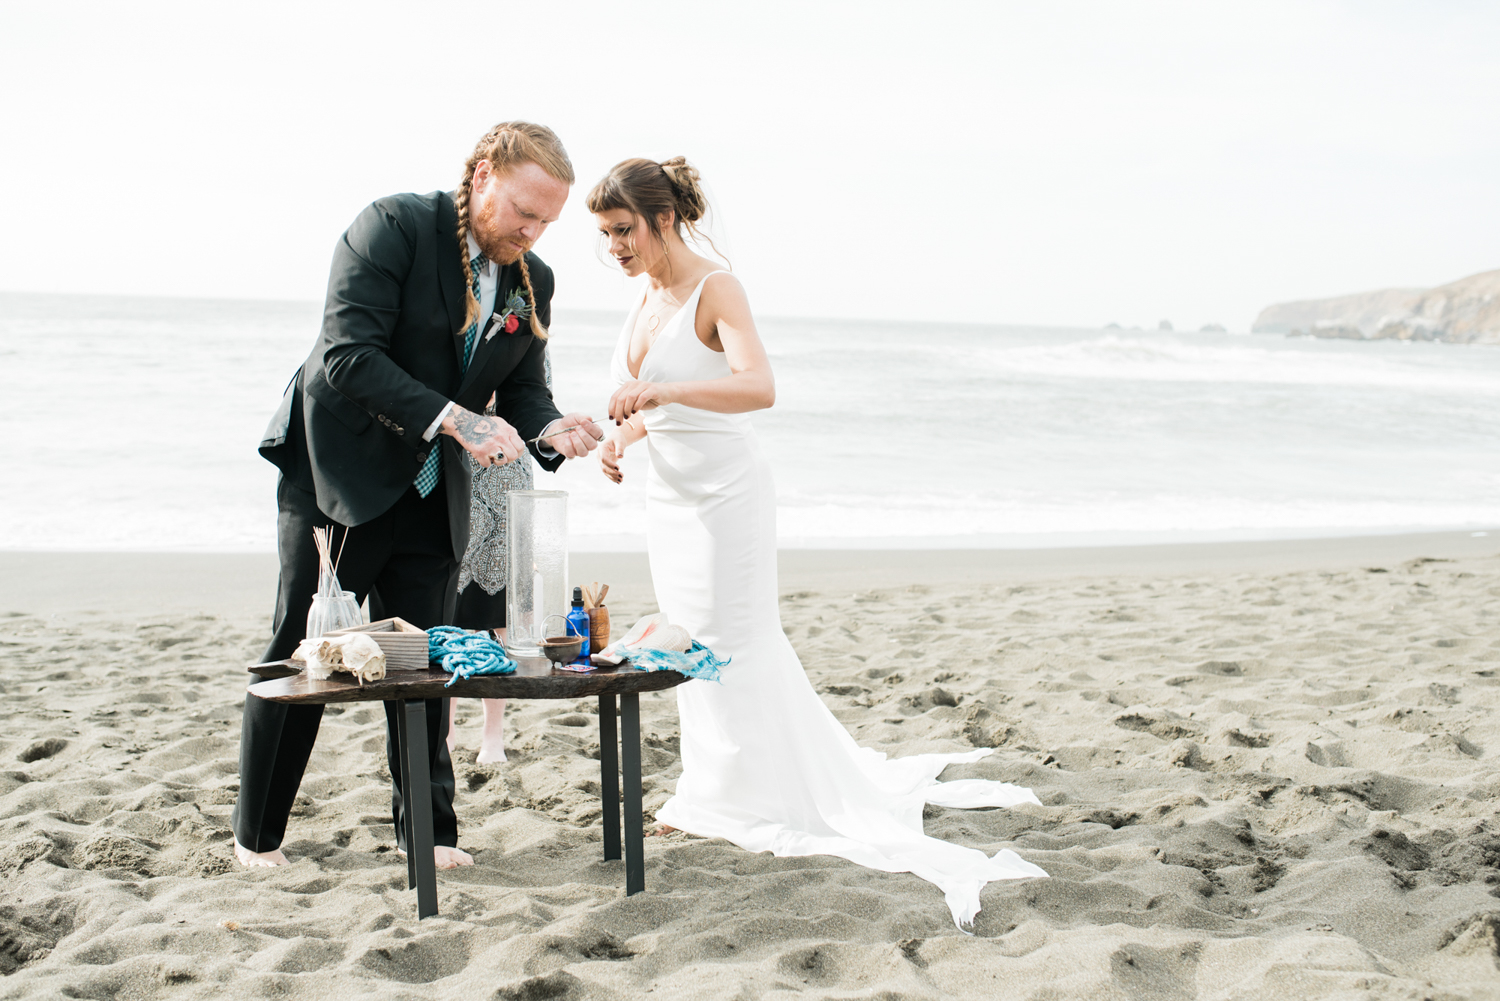 Pacifica_Beach_Surfer_Wedding_103.jpg